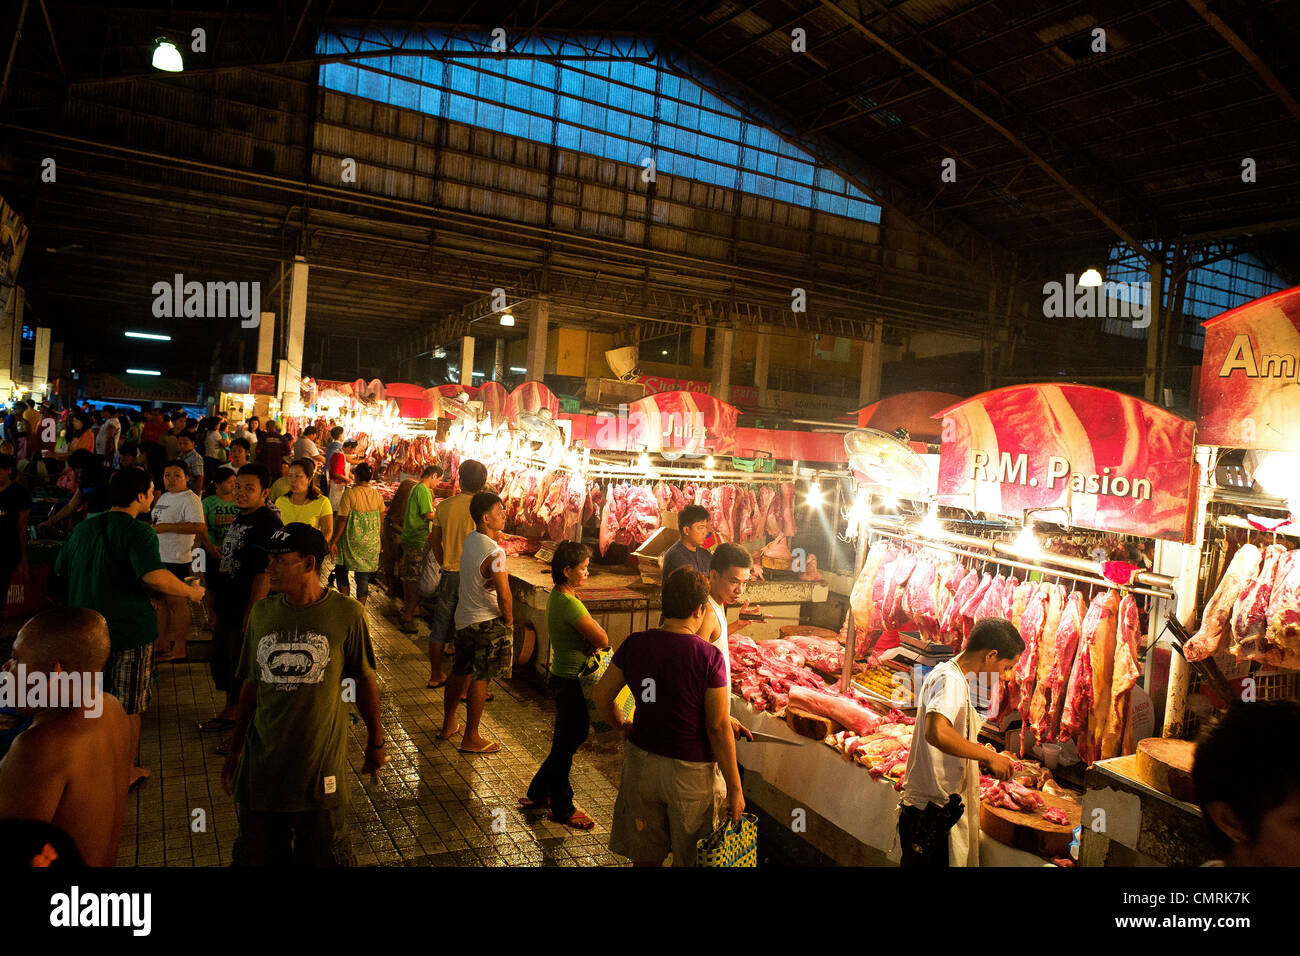 Crowds inspect the cuts of meat on display at the Cubao Farmer's Market in Quezon City, Manila, Philippine Islands. - Stock Image